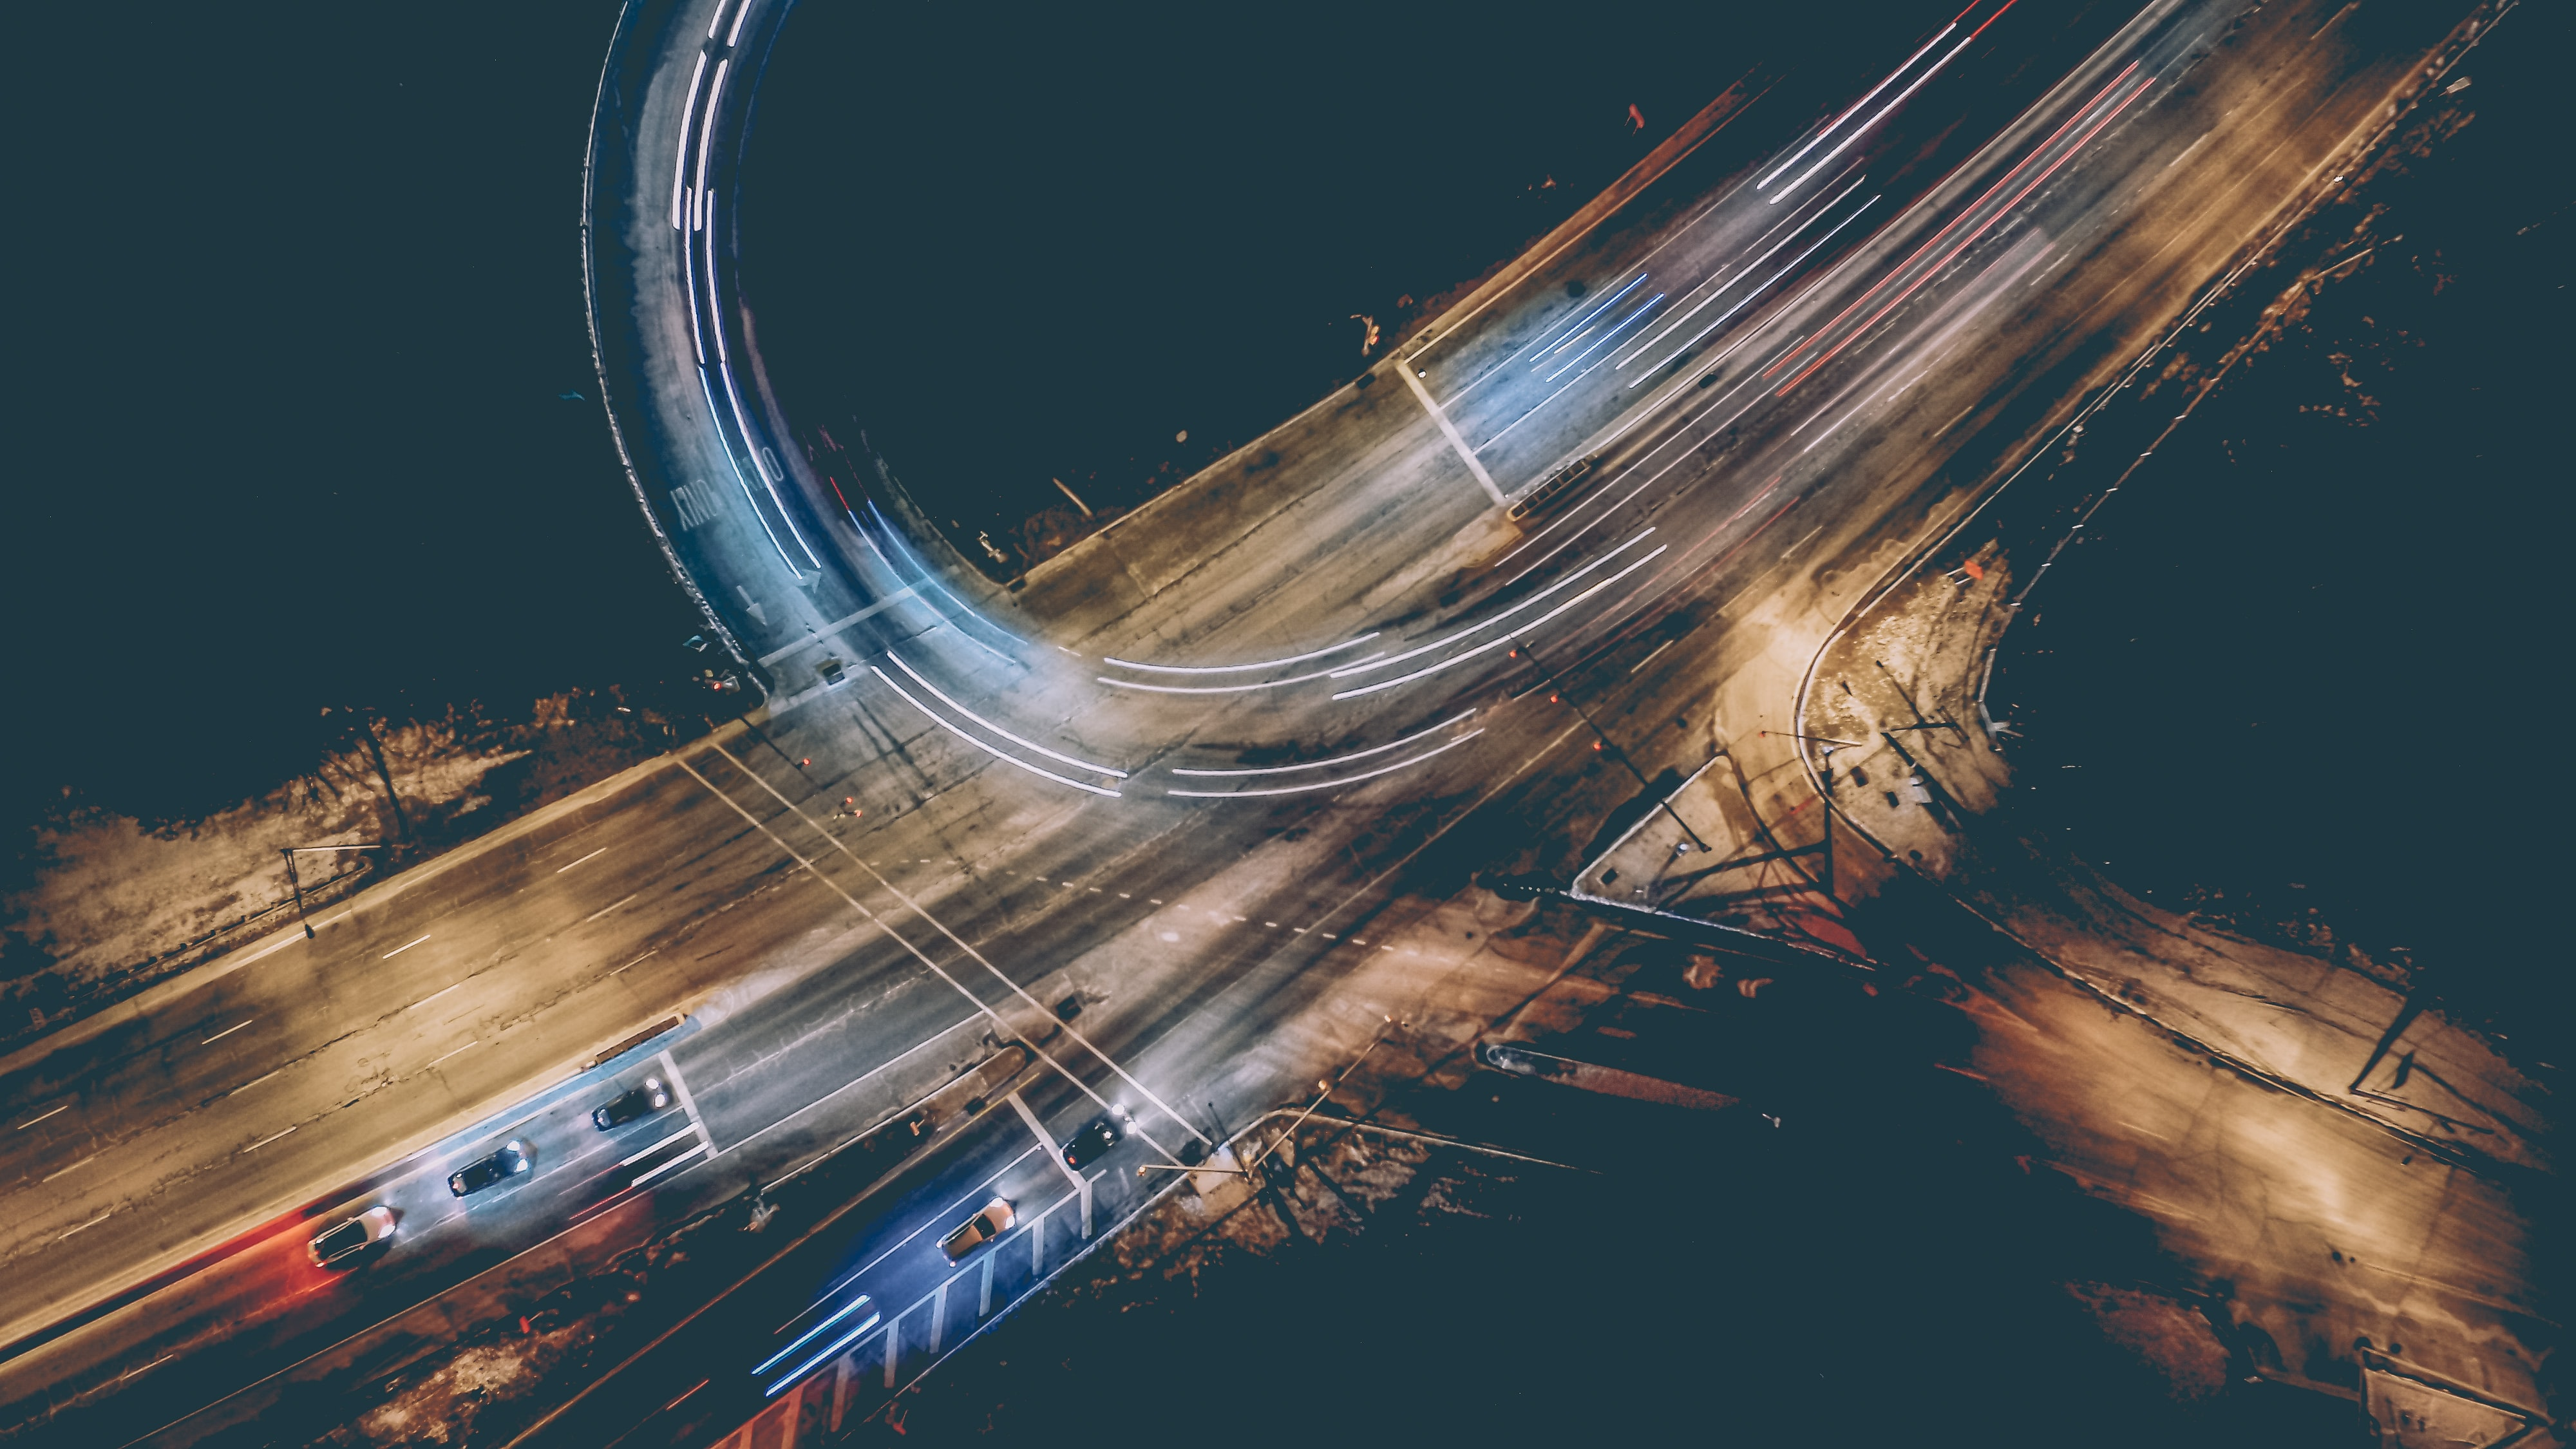 Drone aerial view on a worn down multiple lane intersection with car light trails at night